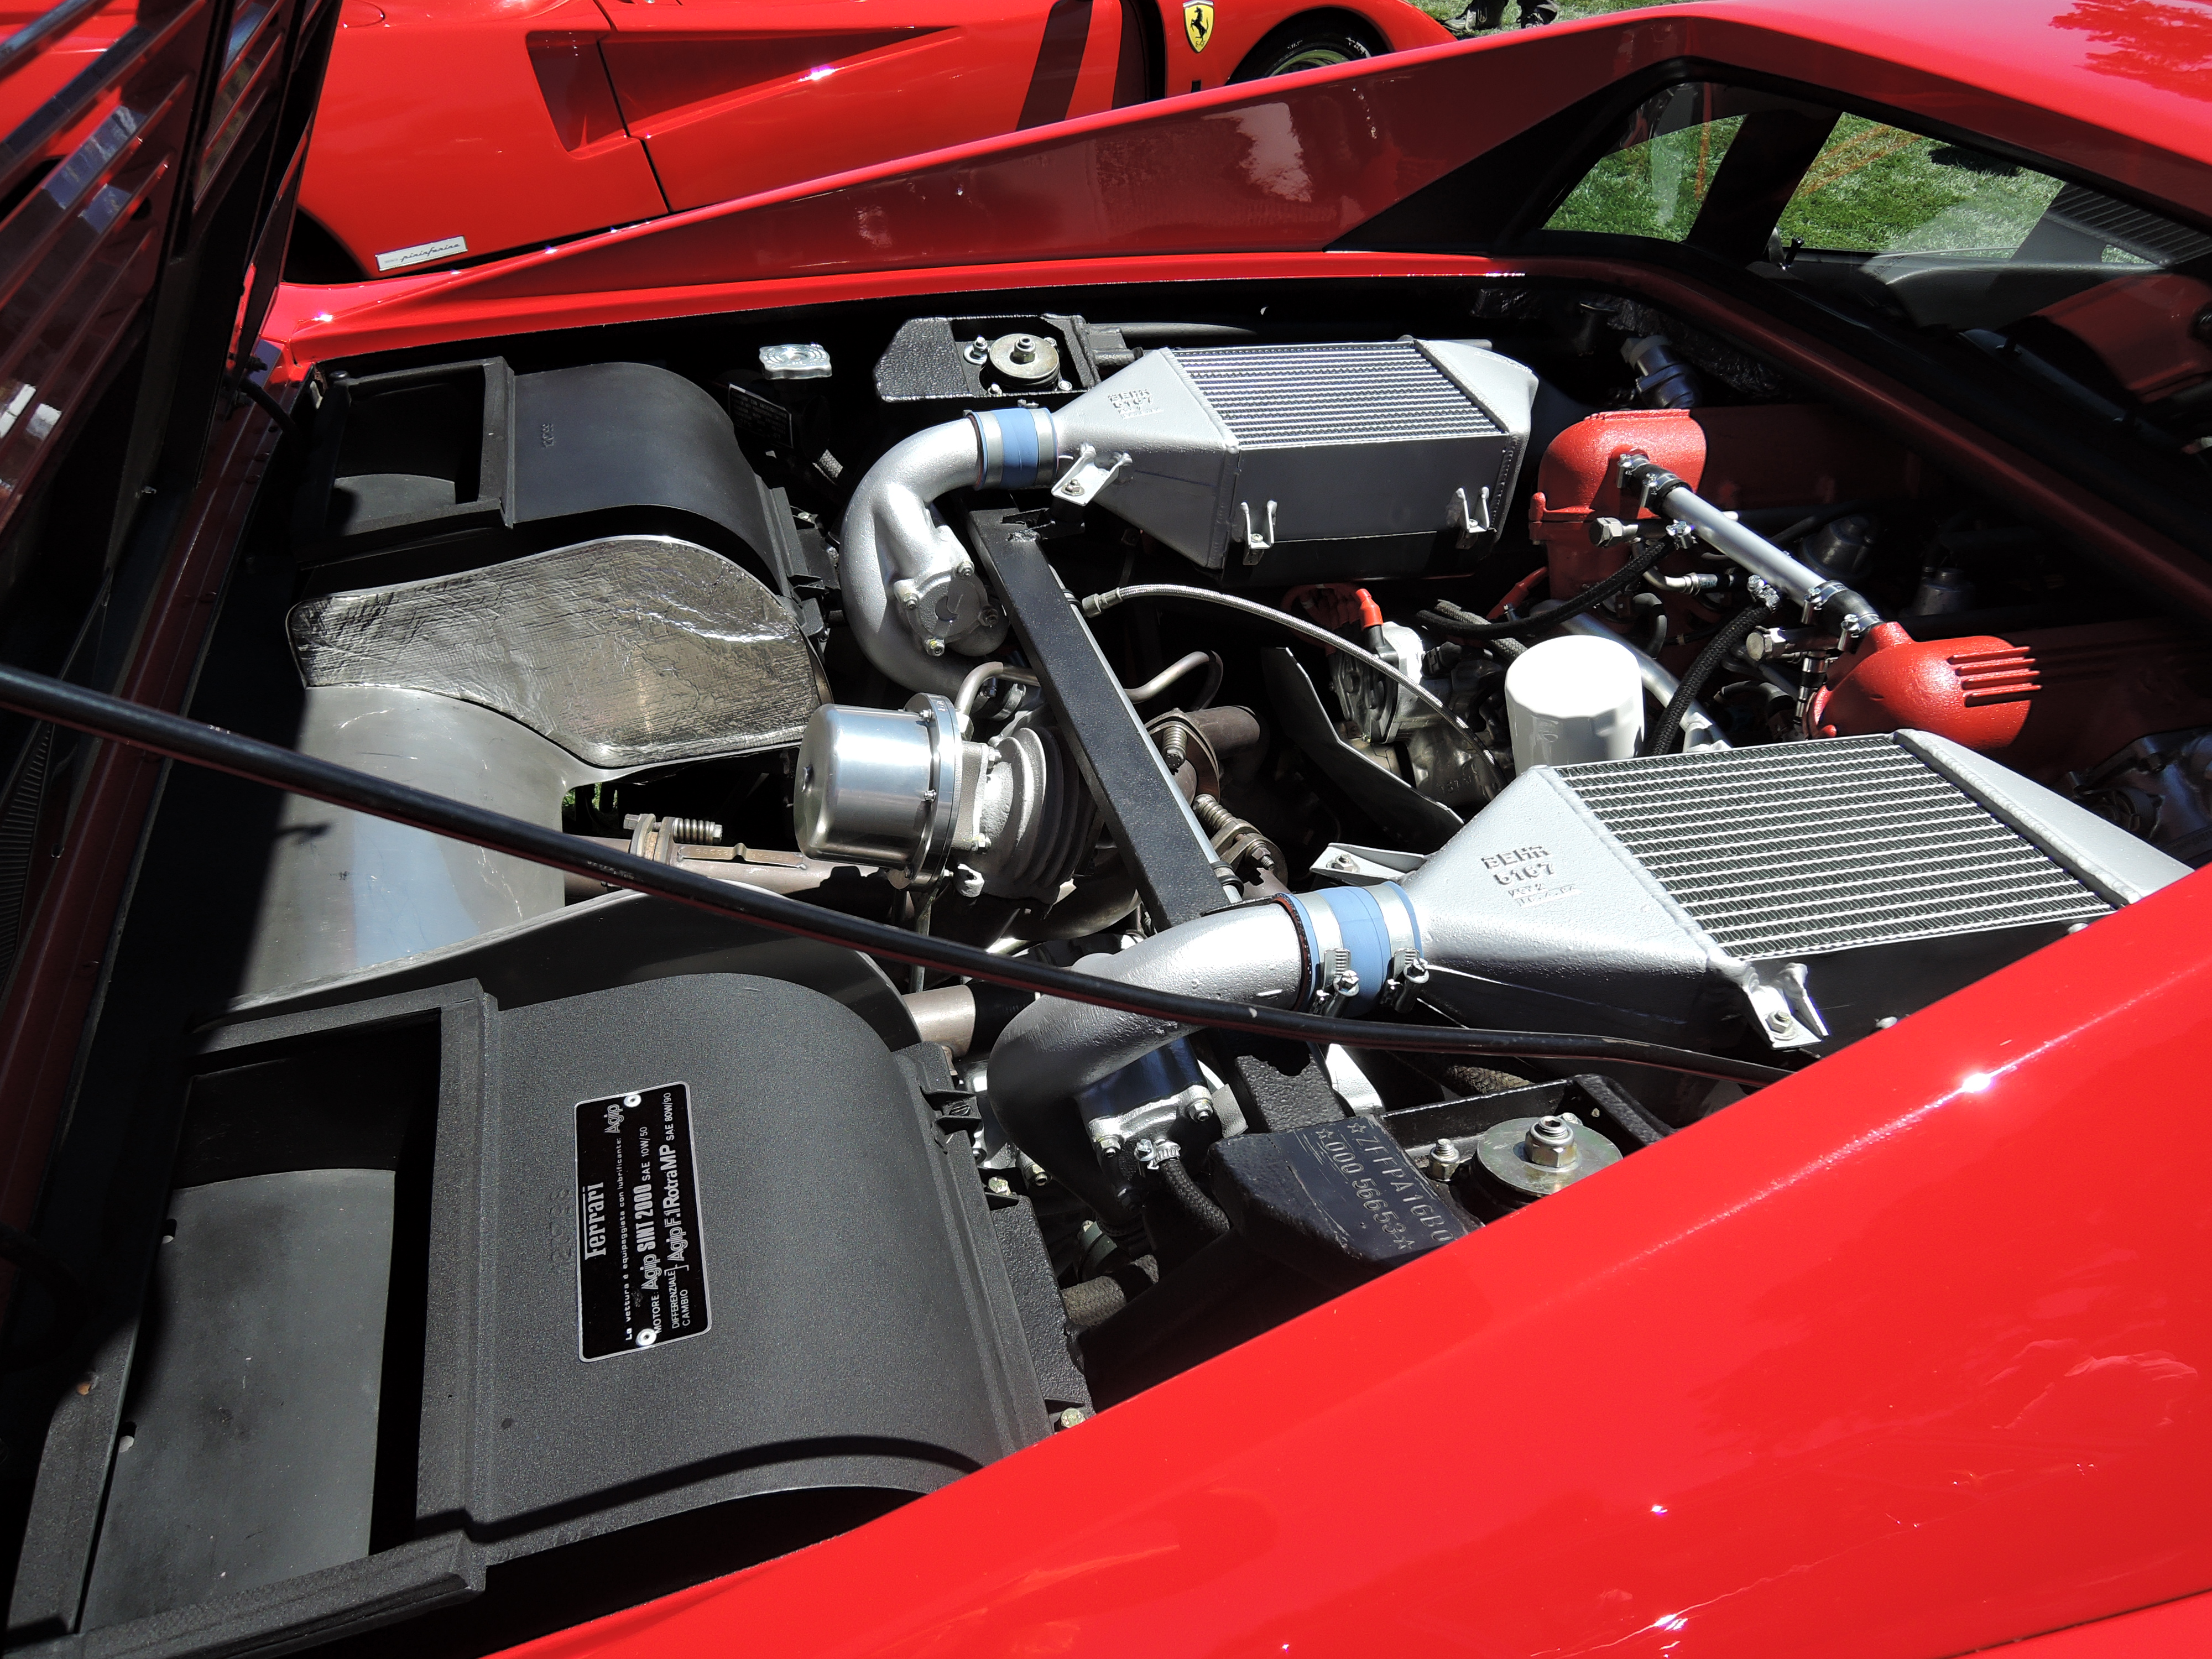 engine 1985 Ferrari 288 GTO Supercar - the quail